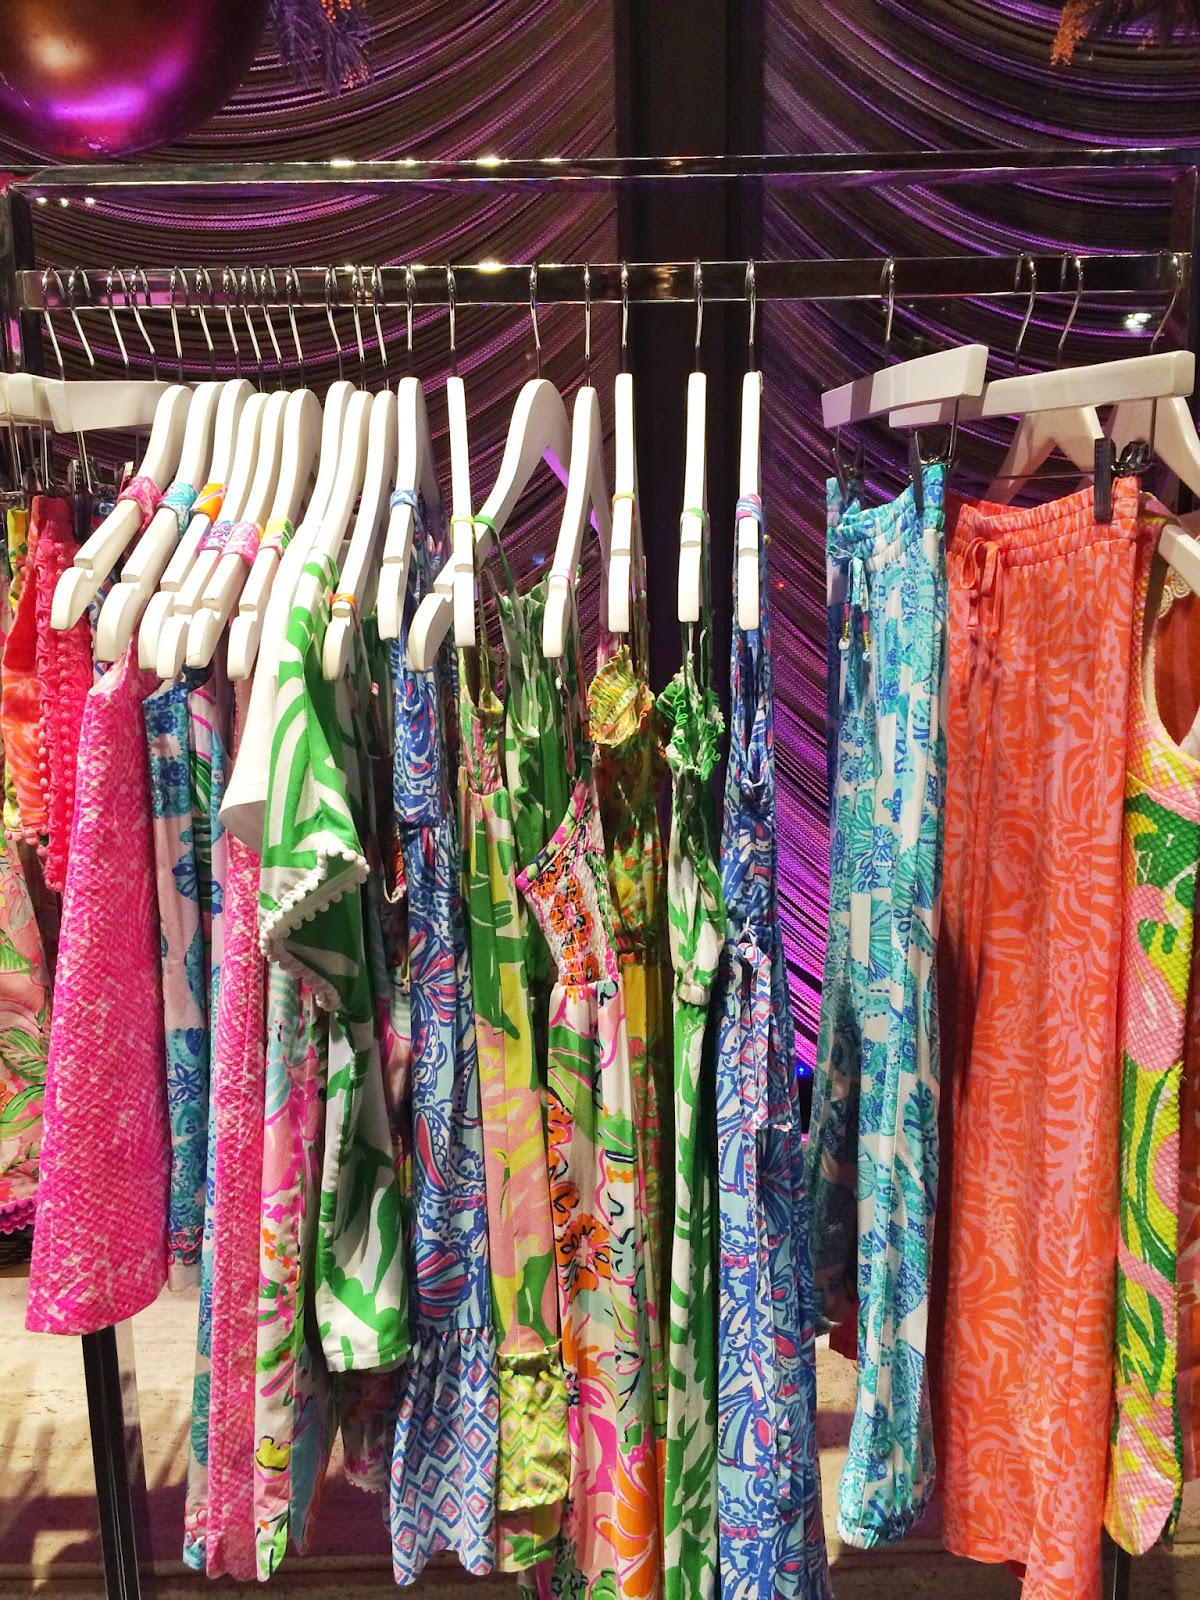 bb69cd8c66c Lilly Pulitzer Collection For Target Sells Out in Hours